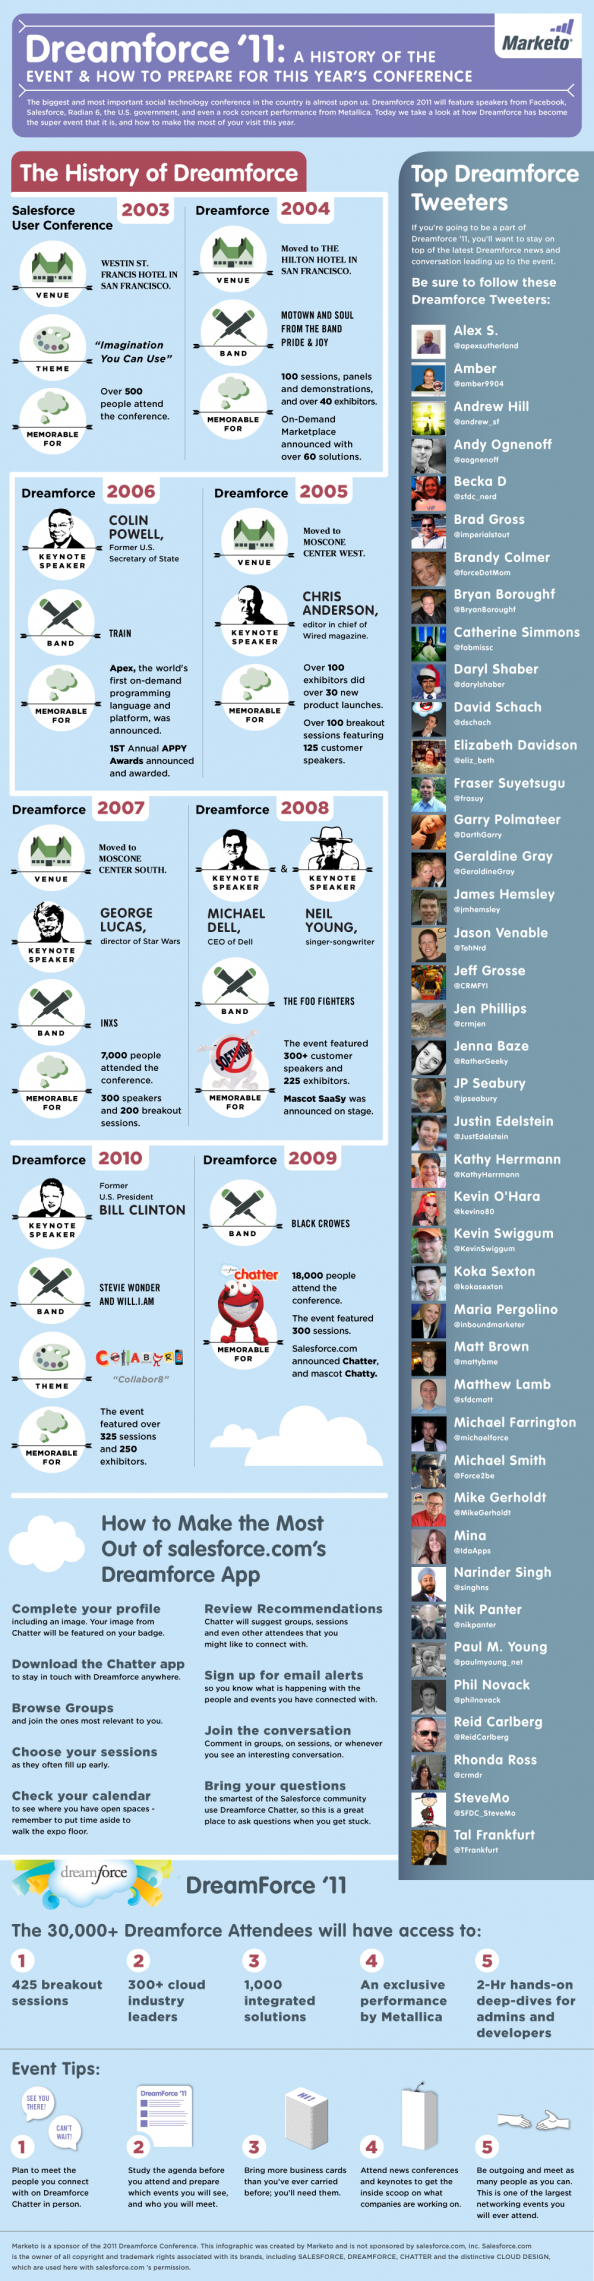 Dreamforce &#039;11 Infographic